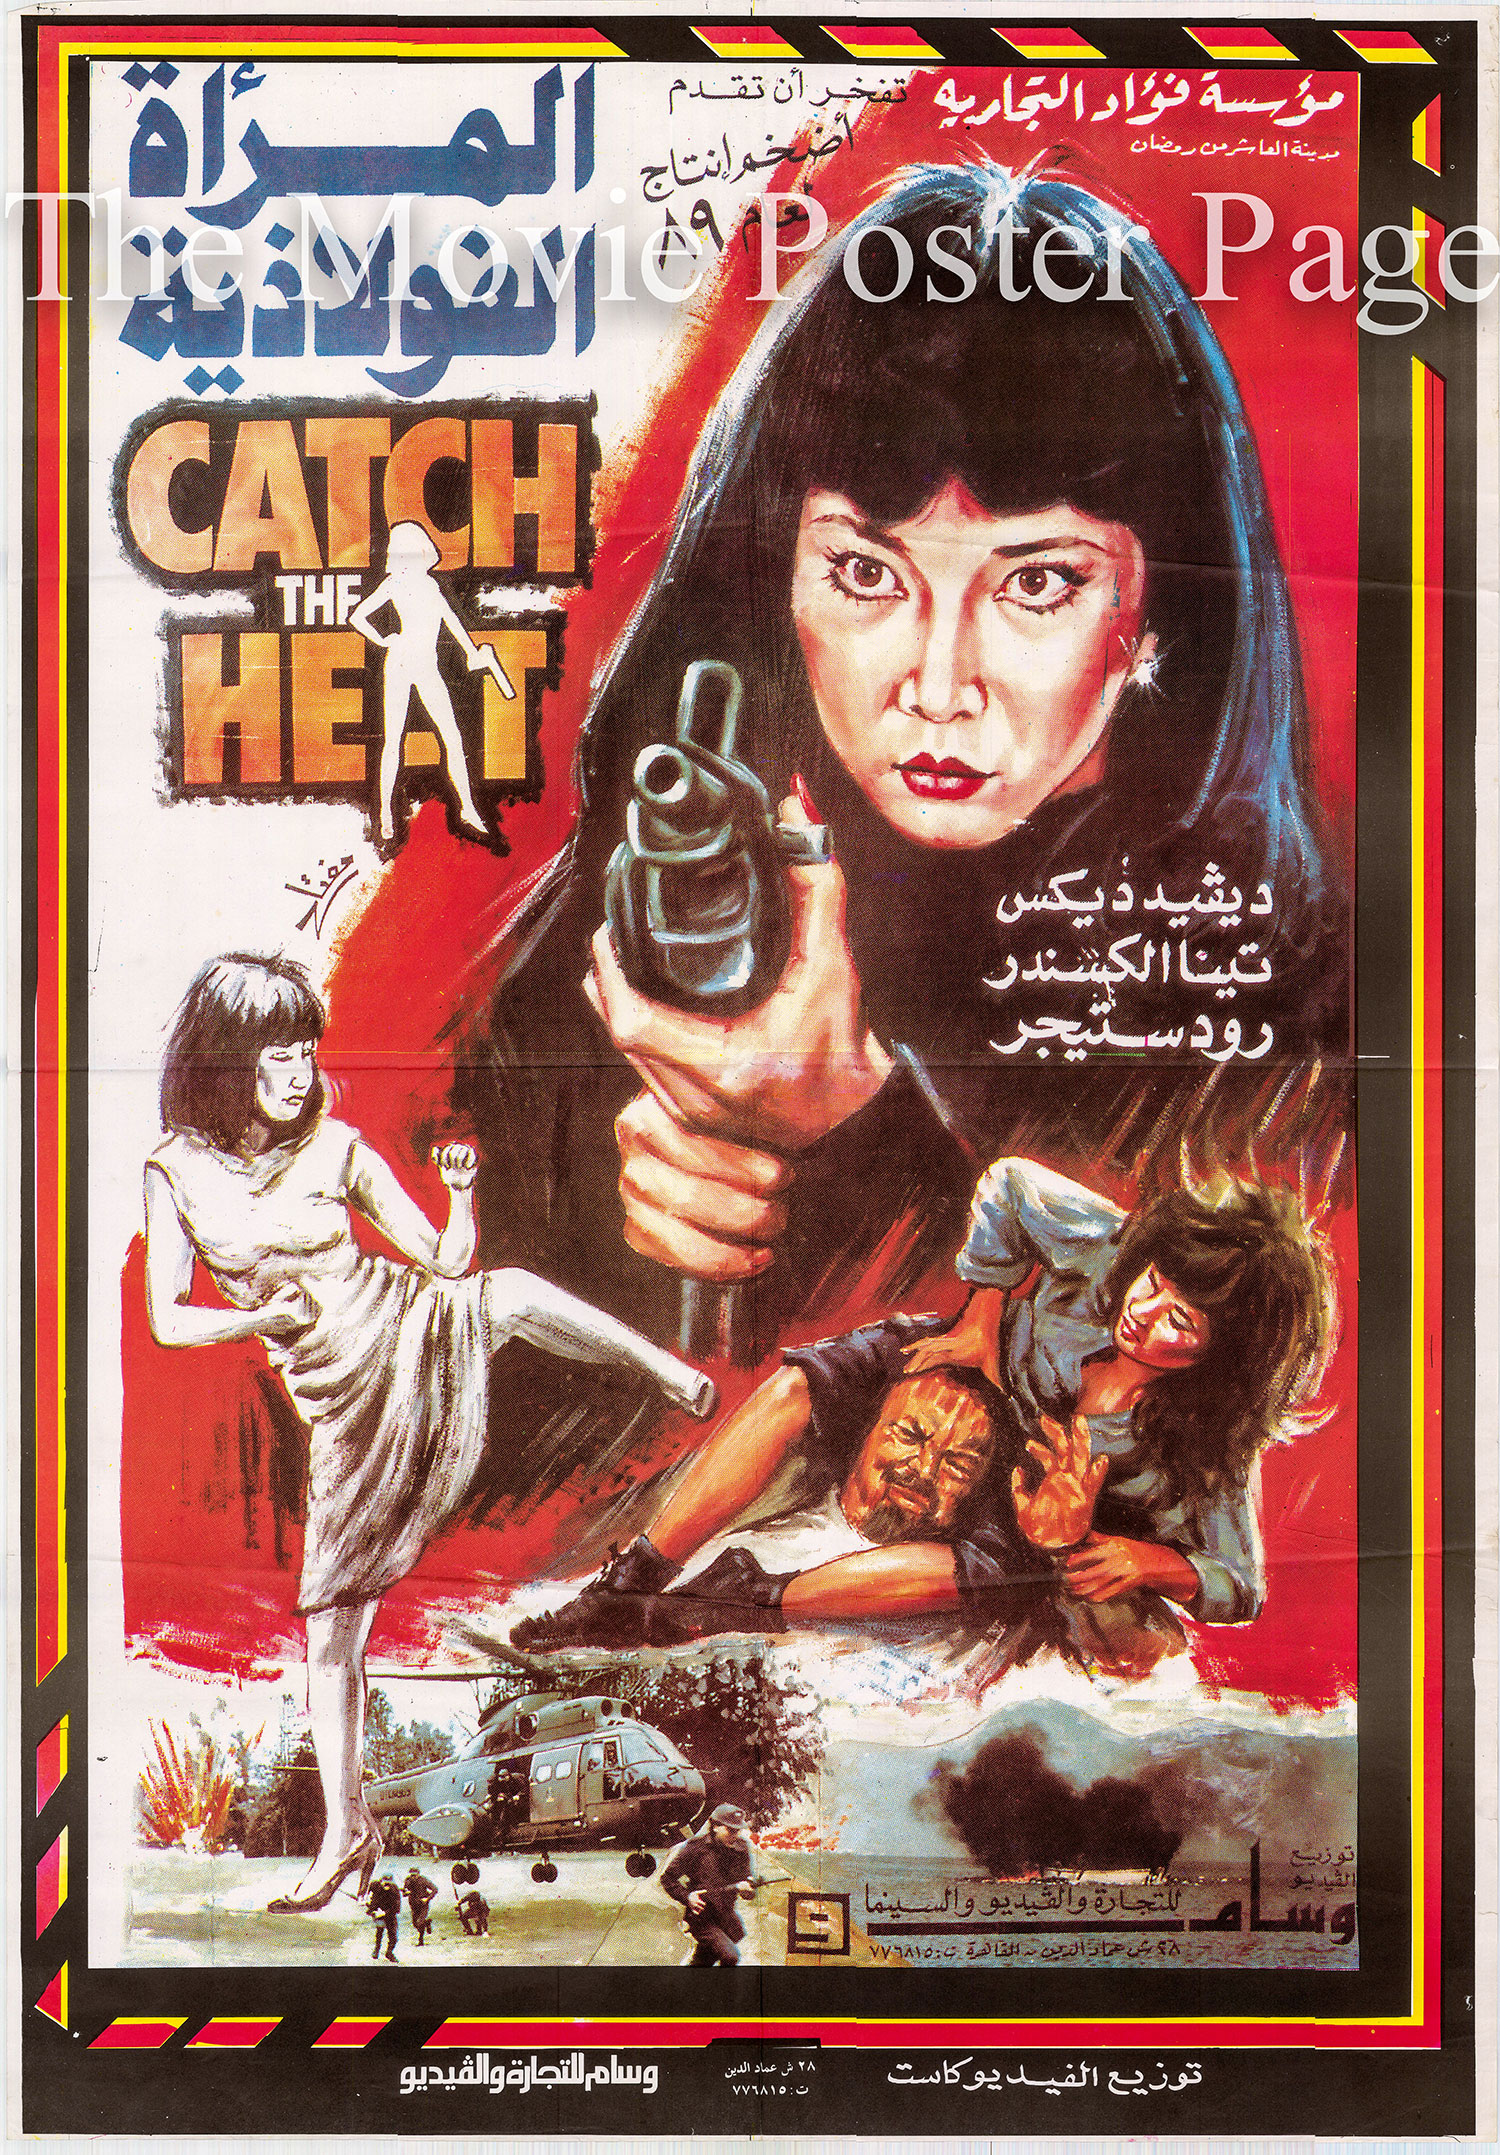 Pictured is an Egyptian promotional poster for the 1987 Joel Silberg film Catch the Heat starring Tiana Alexandra.